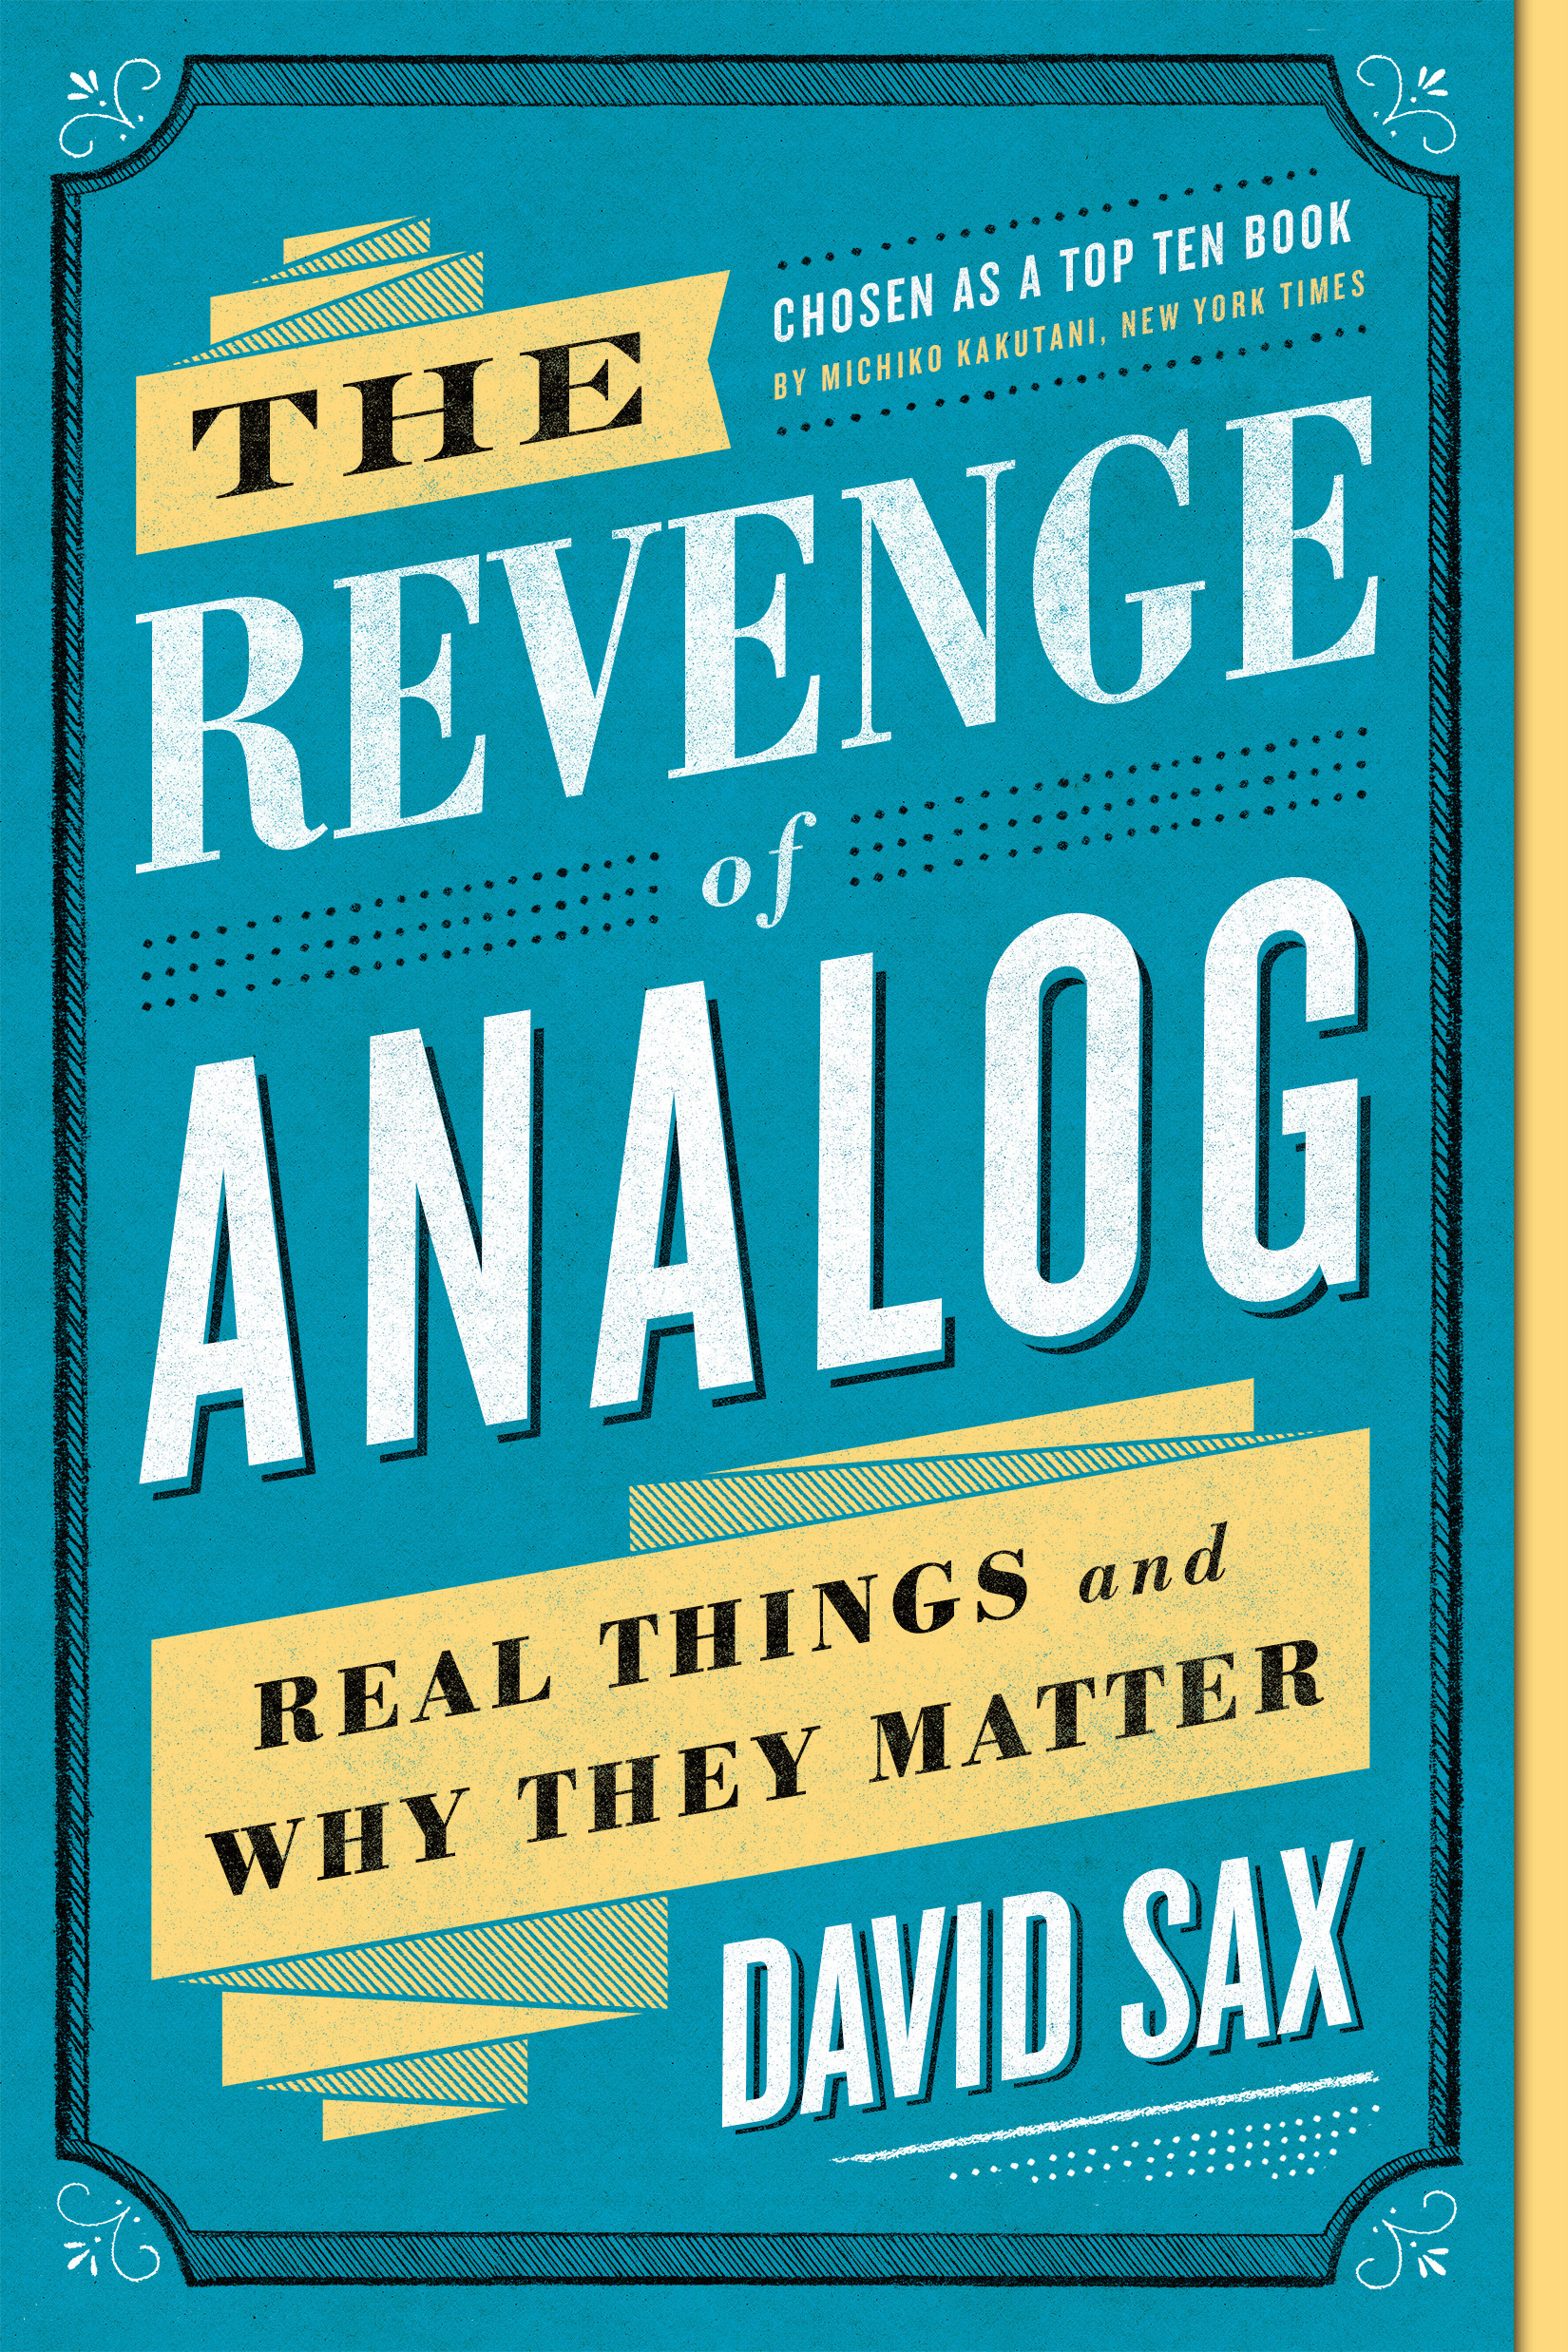 The Revenge of Analog: Real Things and Why They Matter by David Sax - Books  - Hachette Australia